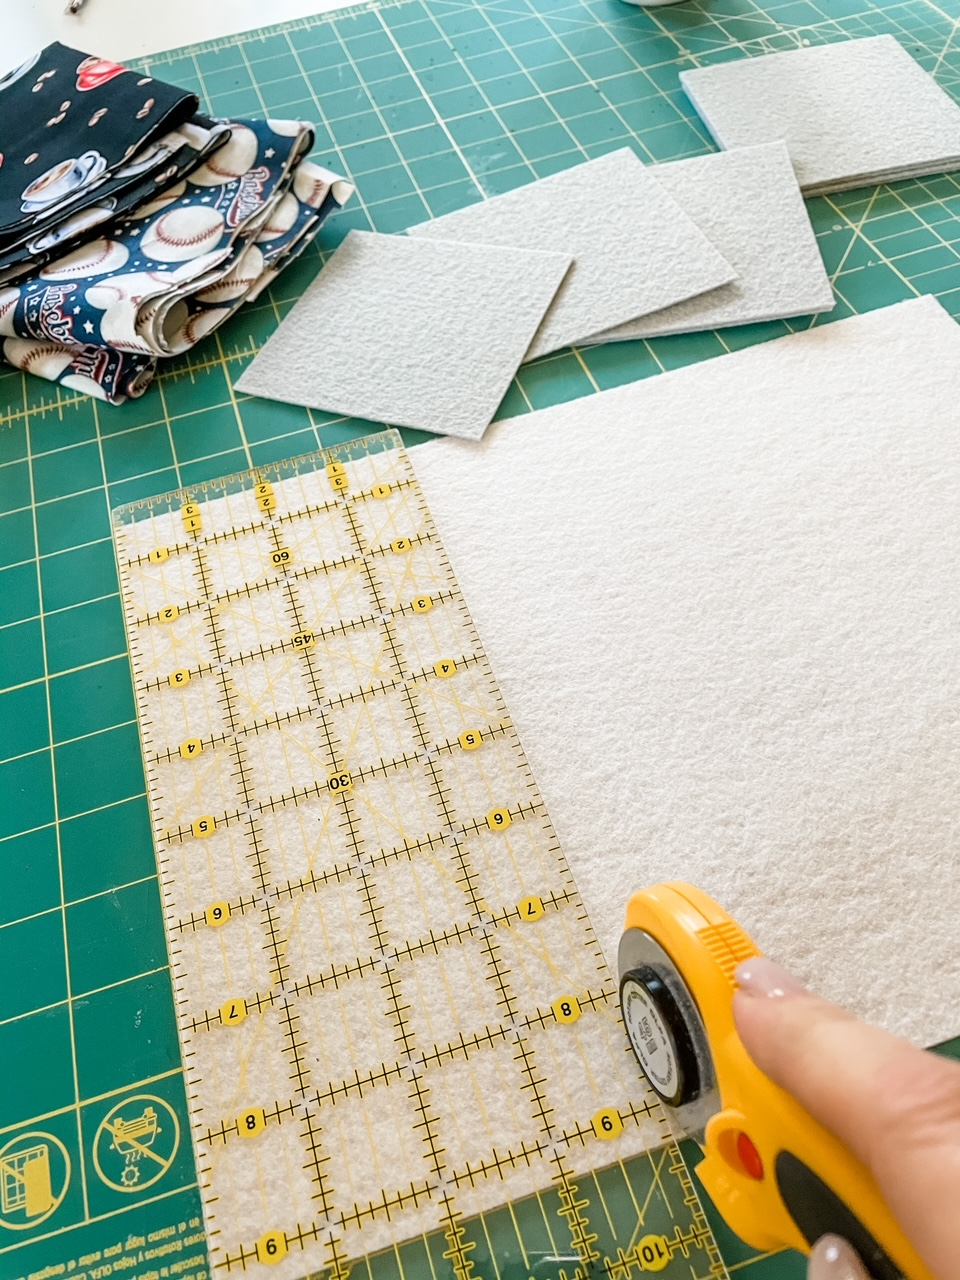 Marie measuring and cutting the fabric for the easy no sew craft coasters